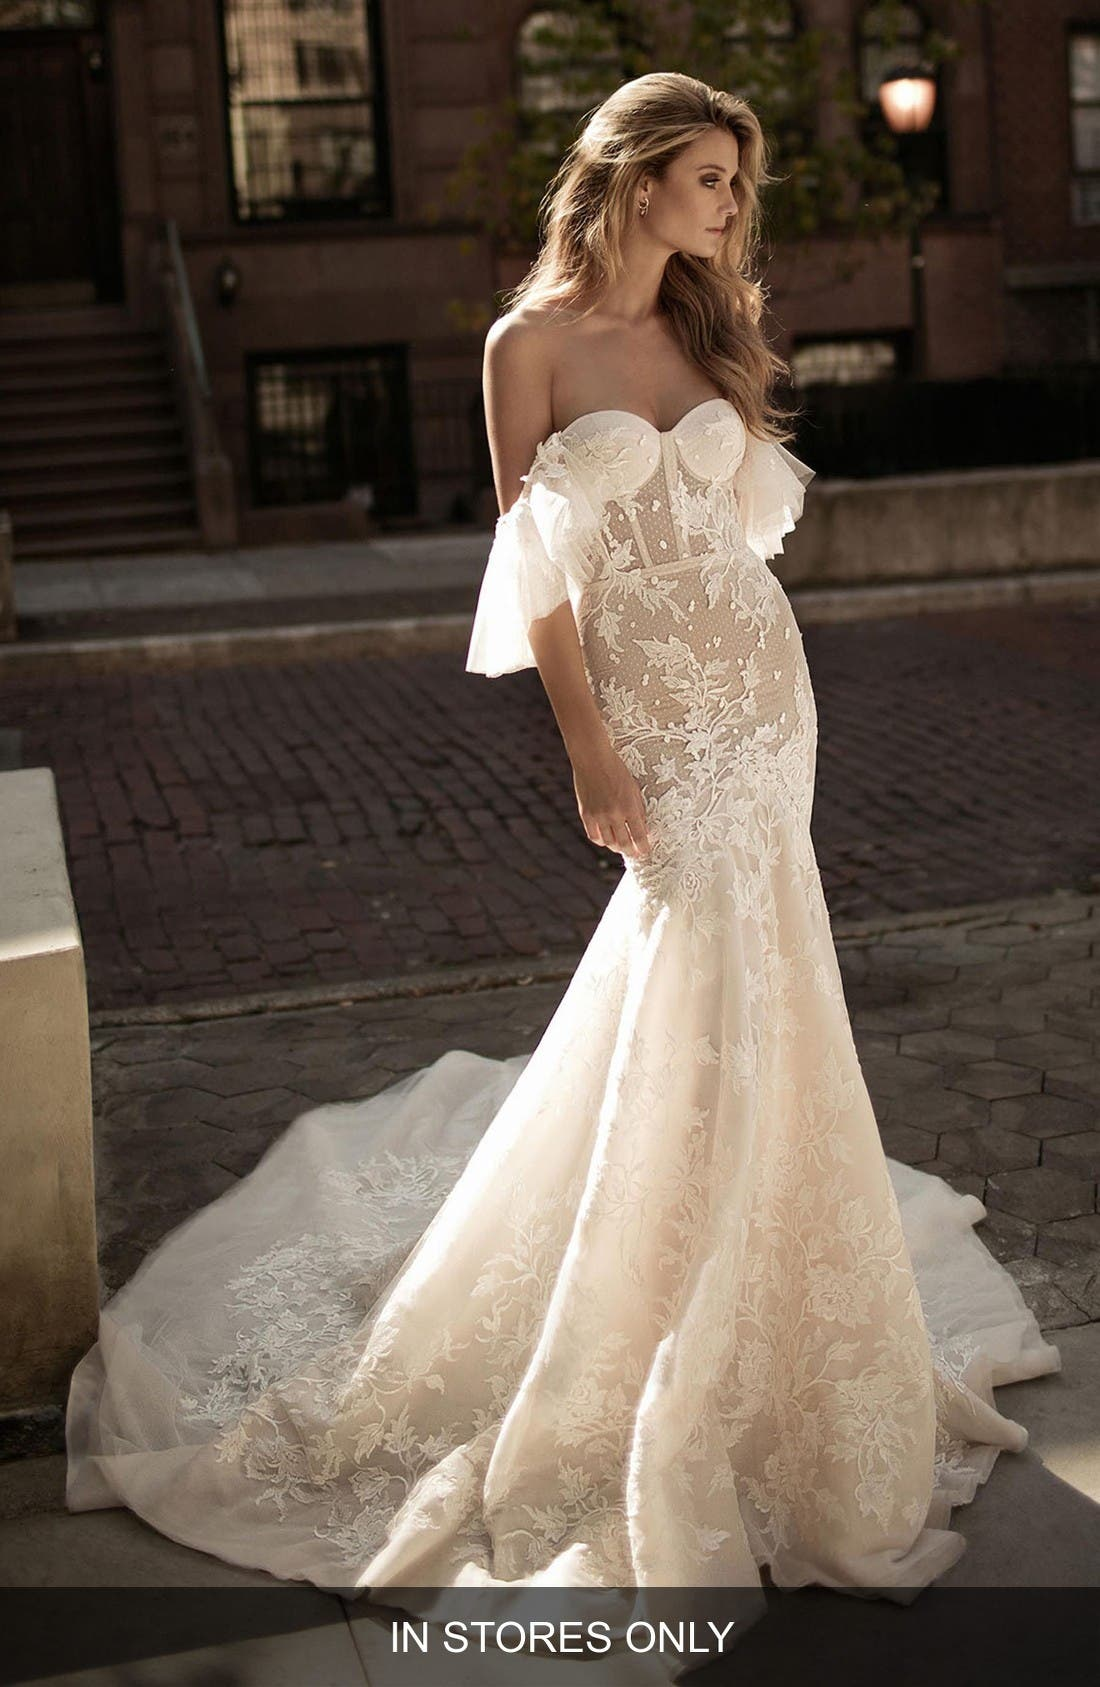 Alternate Image 1 Selected - Berta Off the Shoulder Mermaid Gown (In Stores Only)